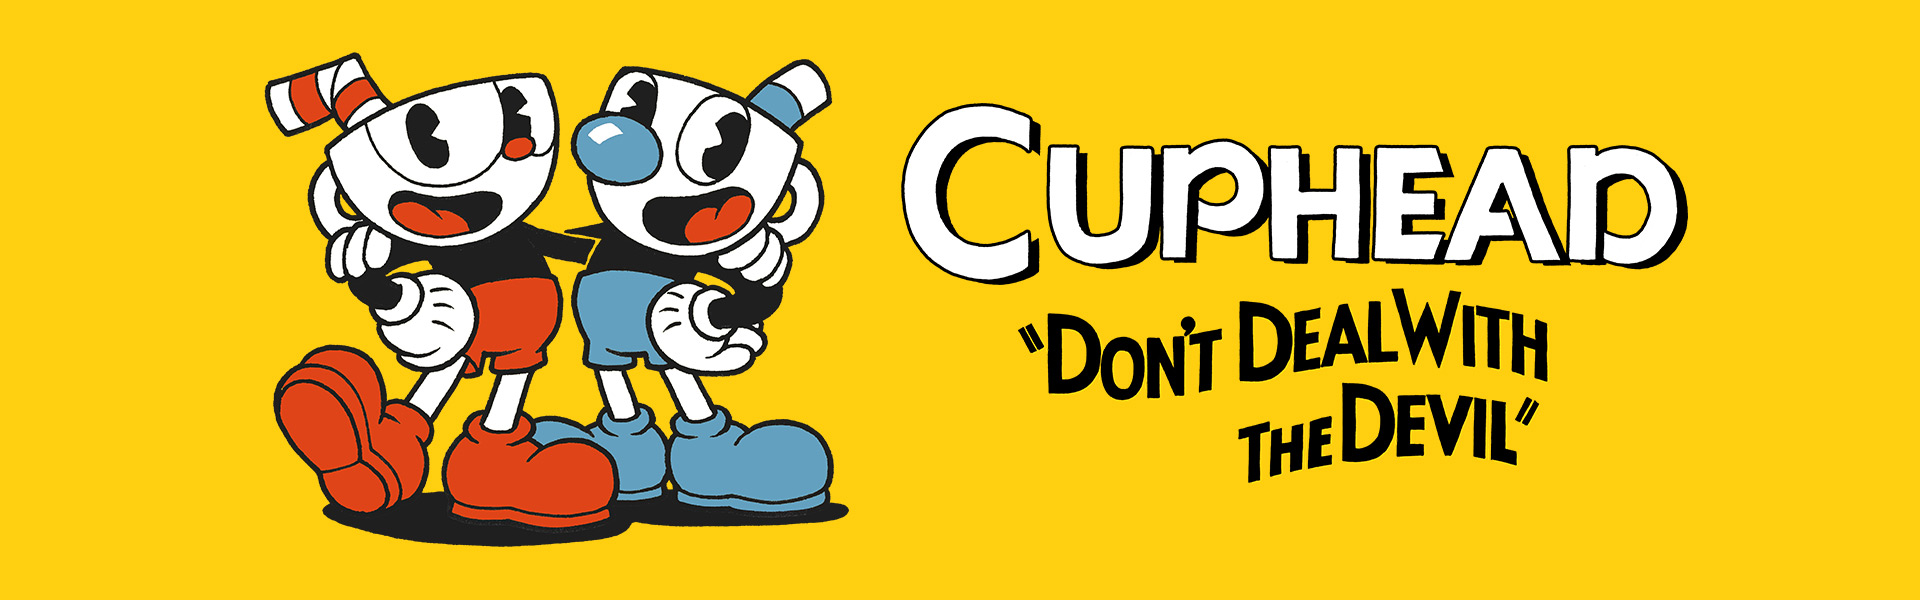 pre order cuphead for xbox one and windows 10 xbox